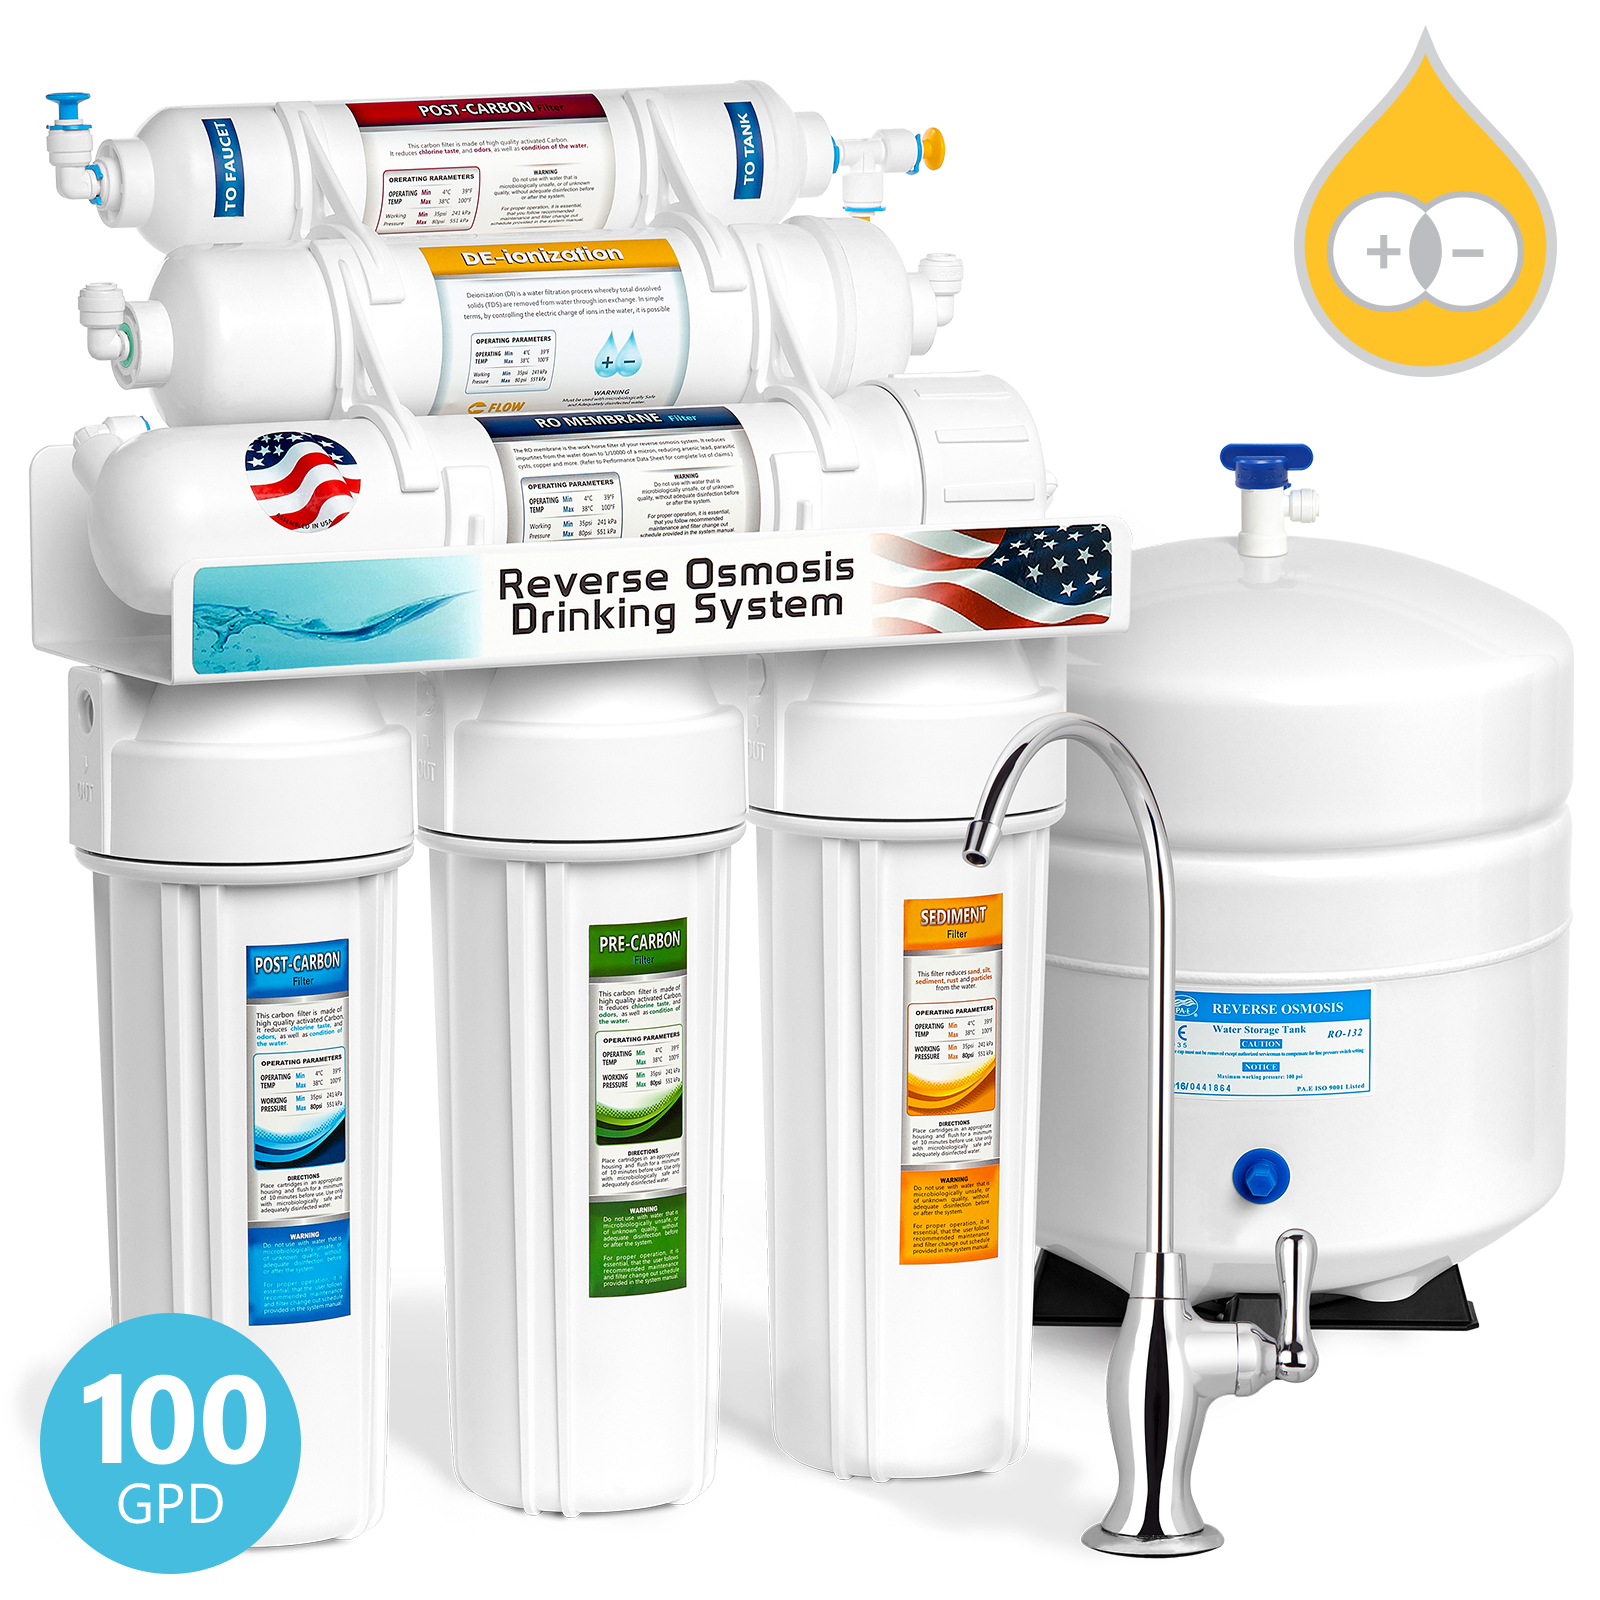 Express Water 6 Stage Deionization + Reverse Osmosis Water Filtration System 100 GPD RO Membrane DI Resin Mixed Bed Ion Exchange Filter Residential Home Under Sink Drinking Water Purification RODI10D